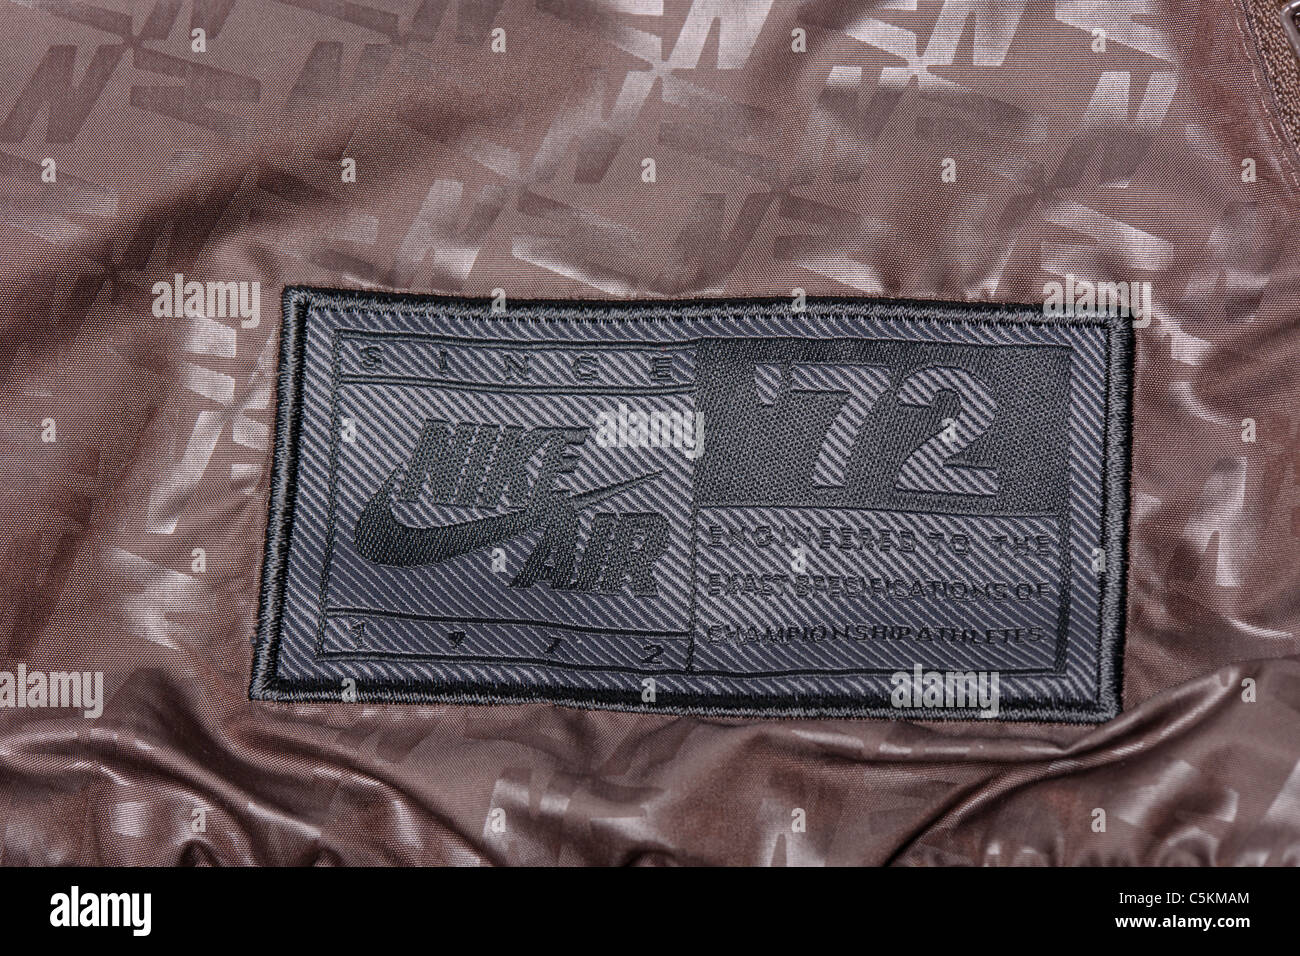 Mens Nike Air Windrunner sportswear nylon windcheater jacket in brown with and all over print detail. 1972 badge - Stock Image